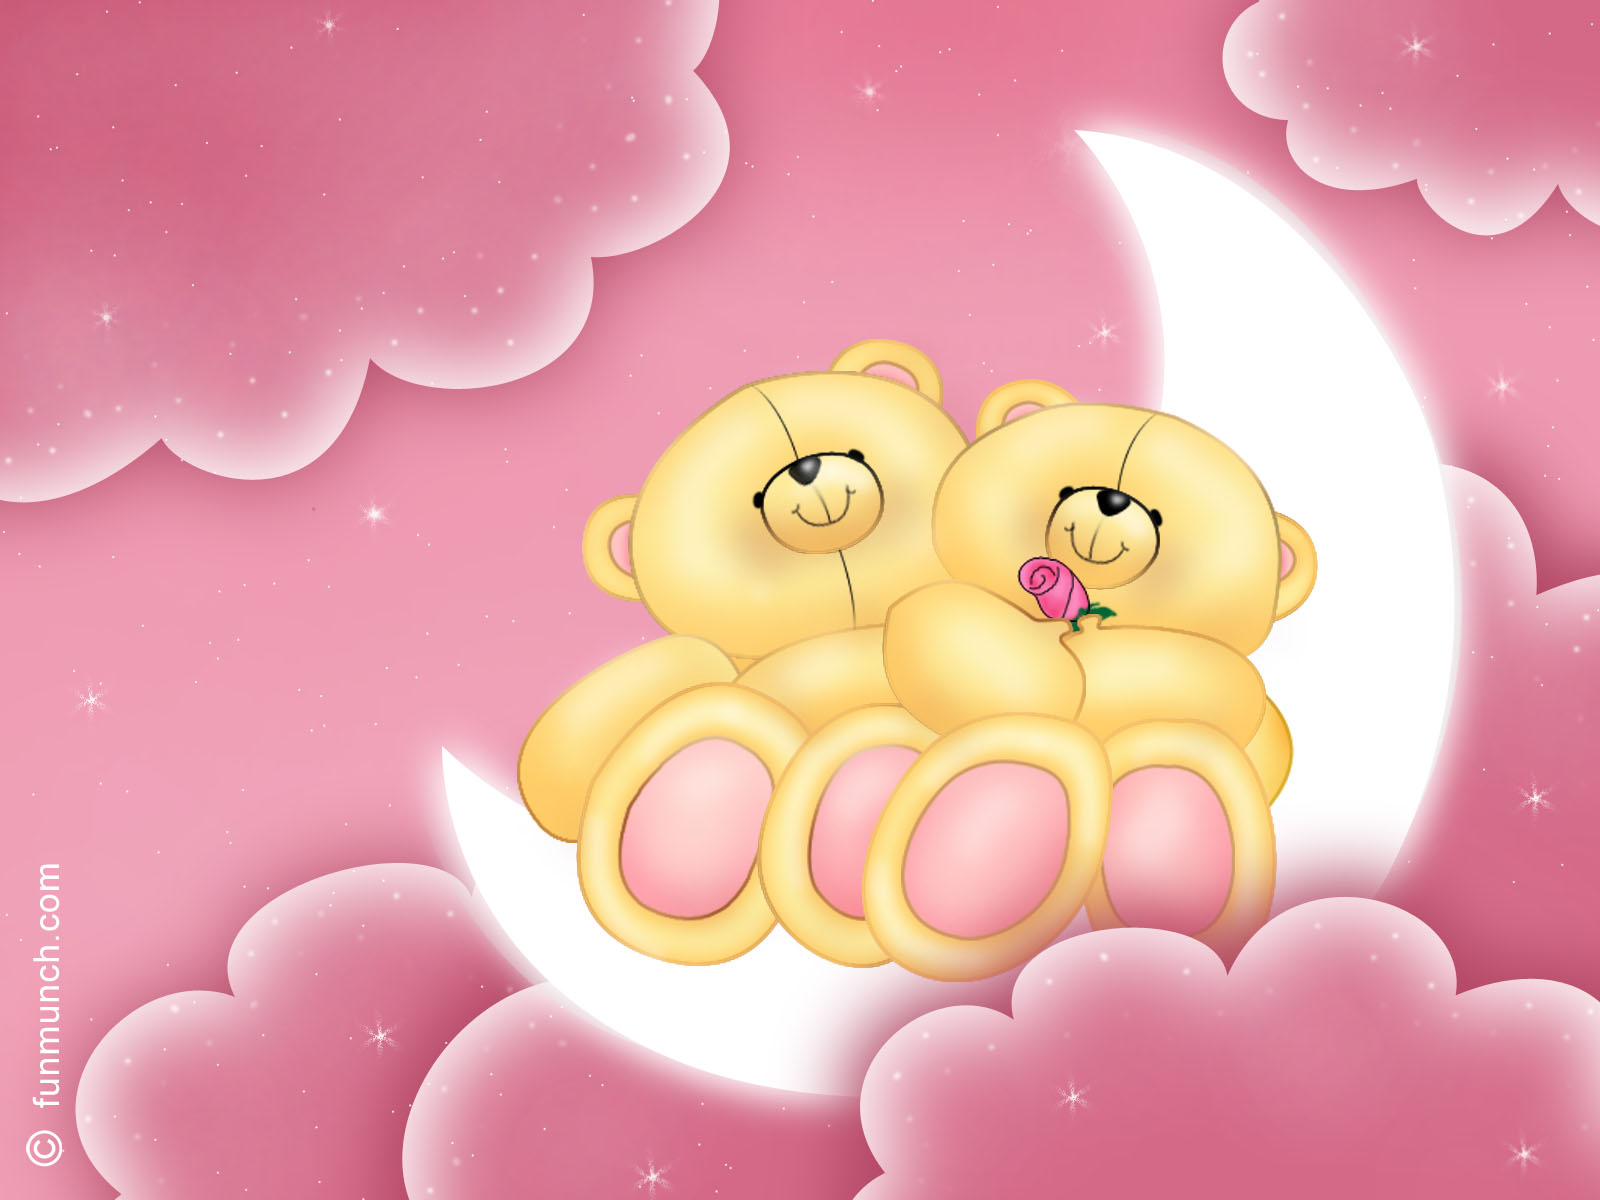 Wallpaper Bears on the moon the Valentine`s day